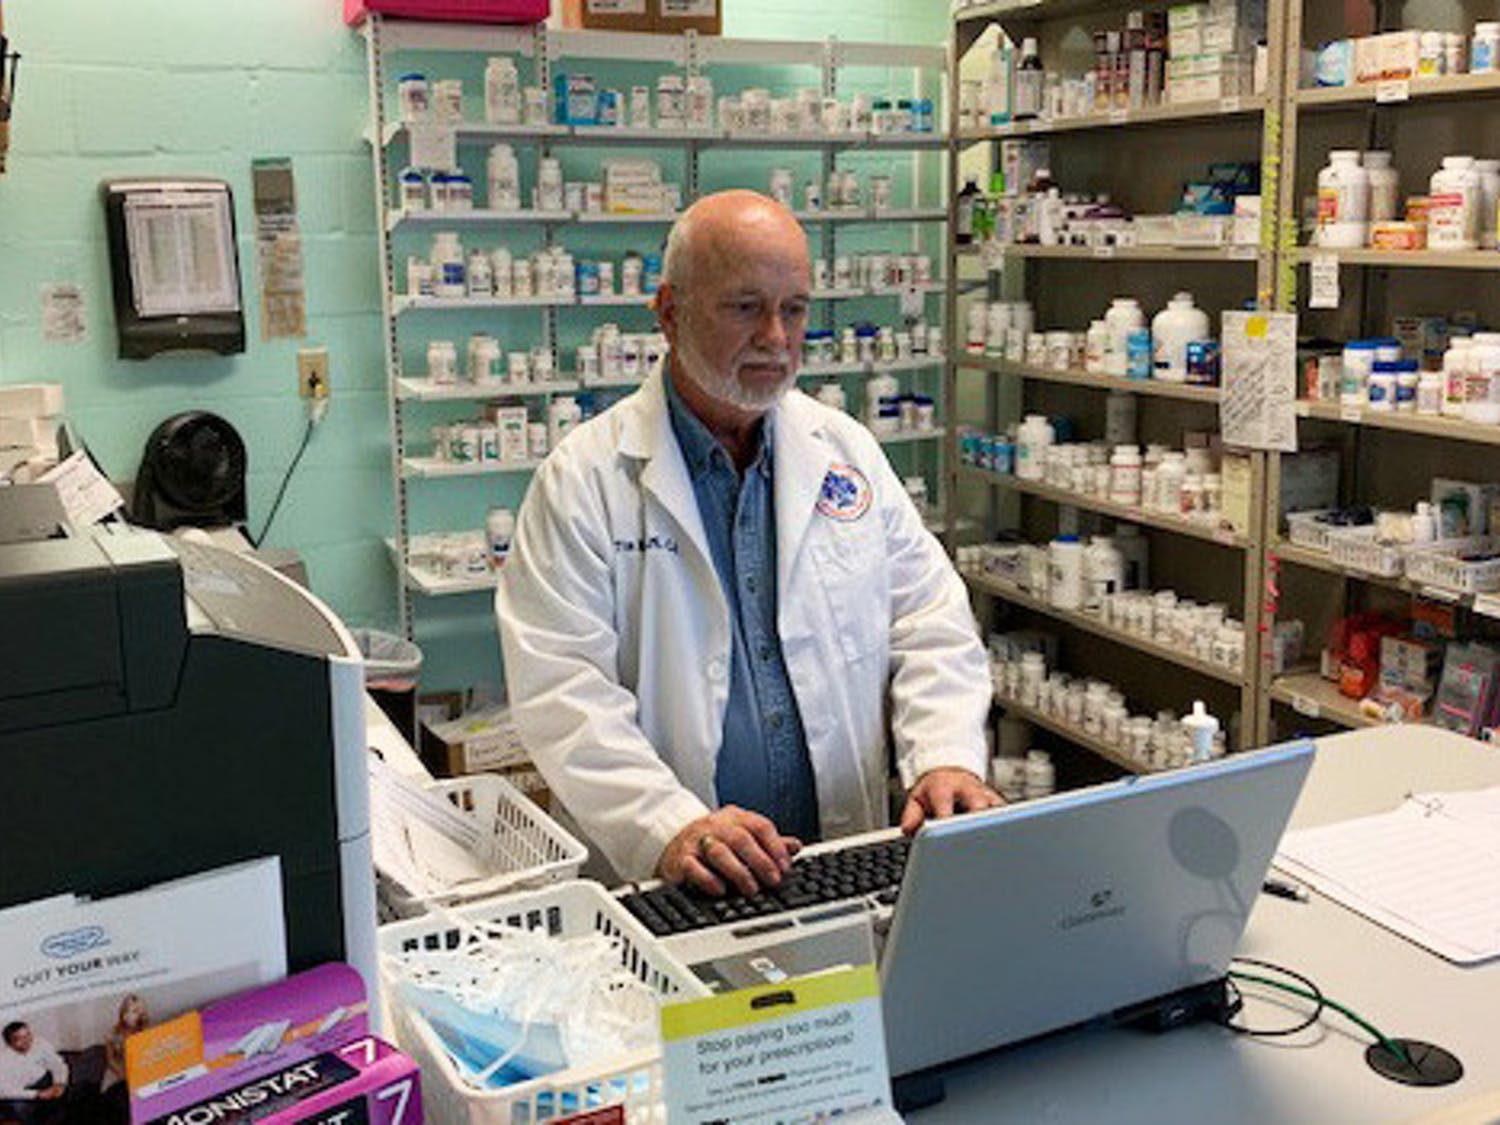 Tim Rogers looks at a computer inside the Grace Pharmacy (Photo courtesy of Lorry Davis, programs administrator for Grace Healthcare Services)